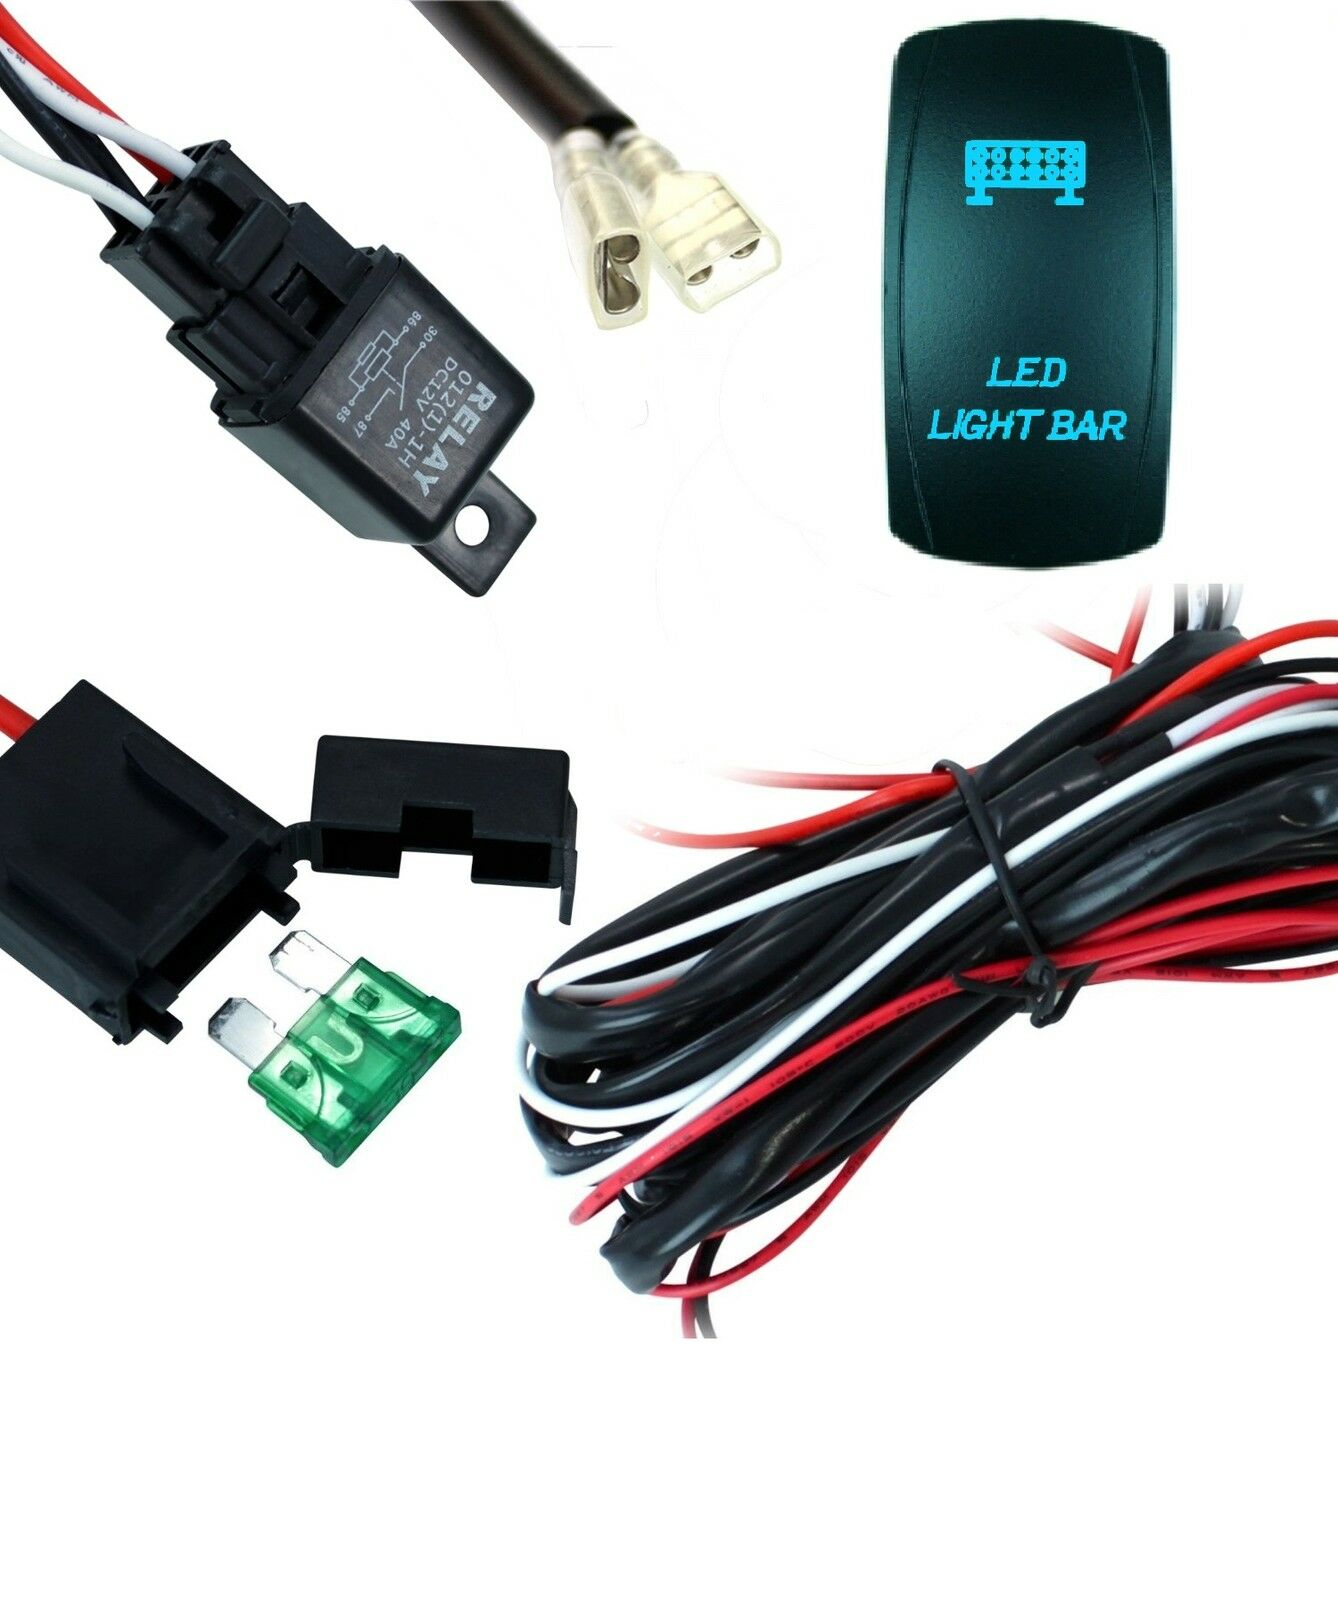 Led Work Light Bar Wiring Harness Kit Cable With Laser Etched Switch And Relay